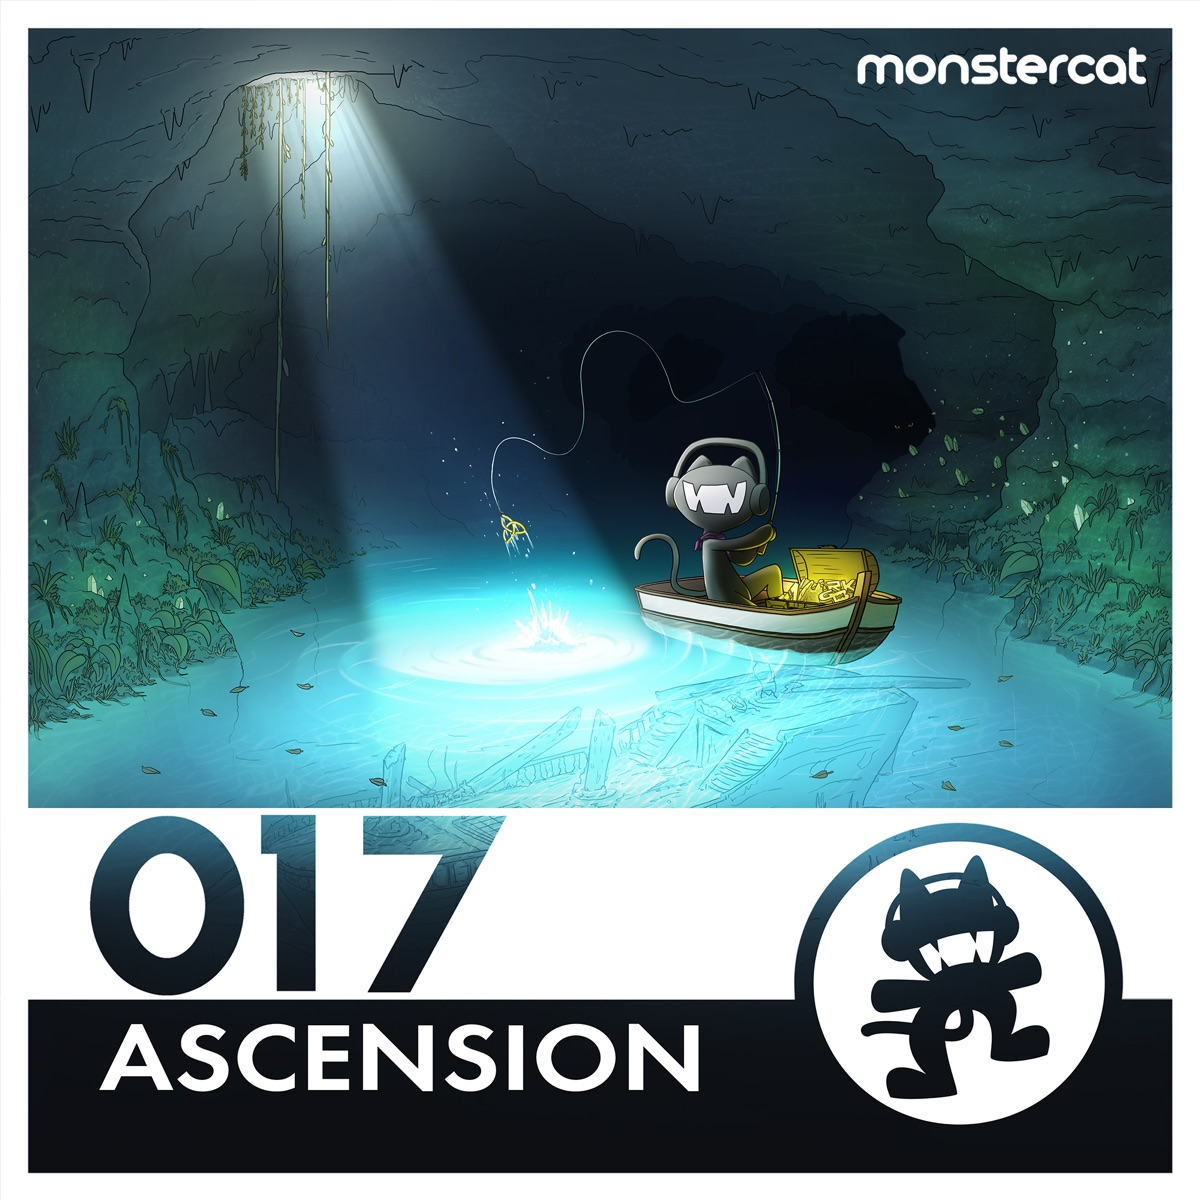 Monstercat 017 - Ascension Album Cover by Various Artists